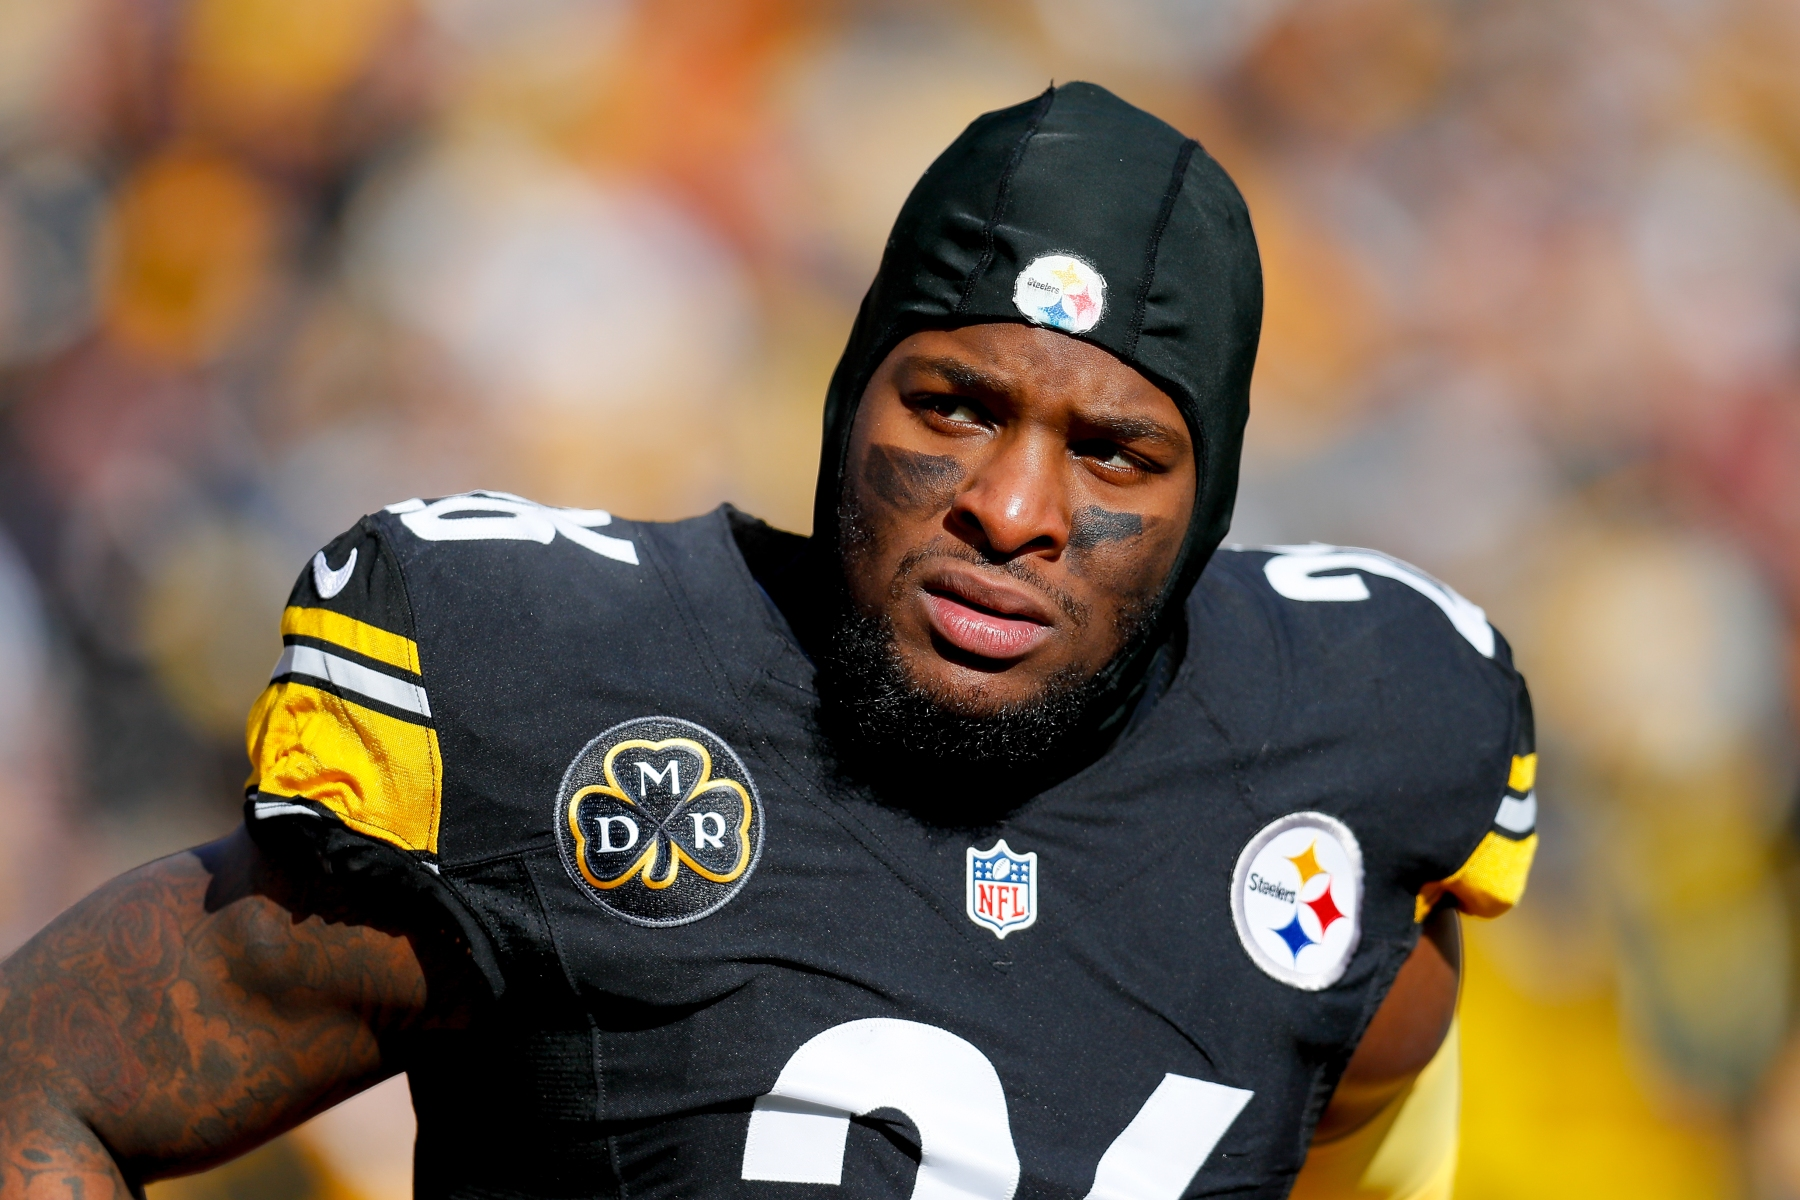 Le'Veon Bell #26 of the Pittsburgh Steelers looks on against the Jacksonville Jaguars during the first half of the AFC Divisional Playoff game at Heinz Field. (Photo by Kevin C. Cox/Getty Images)